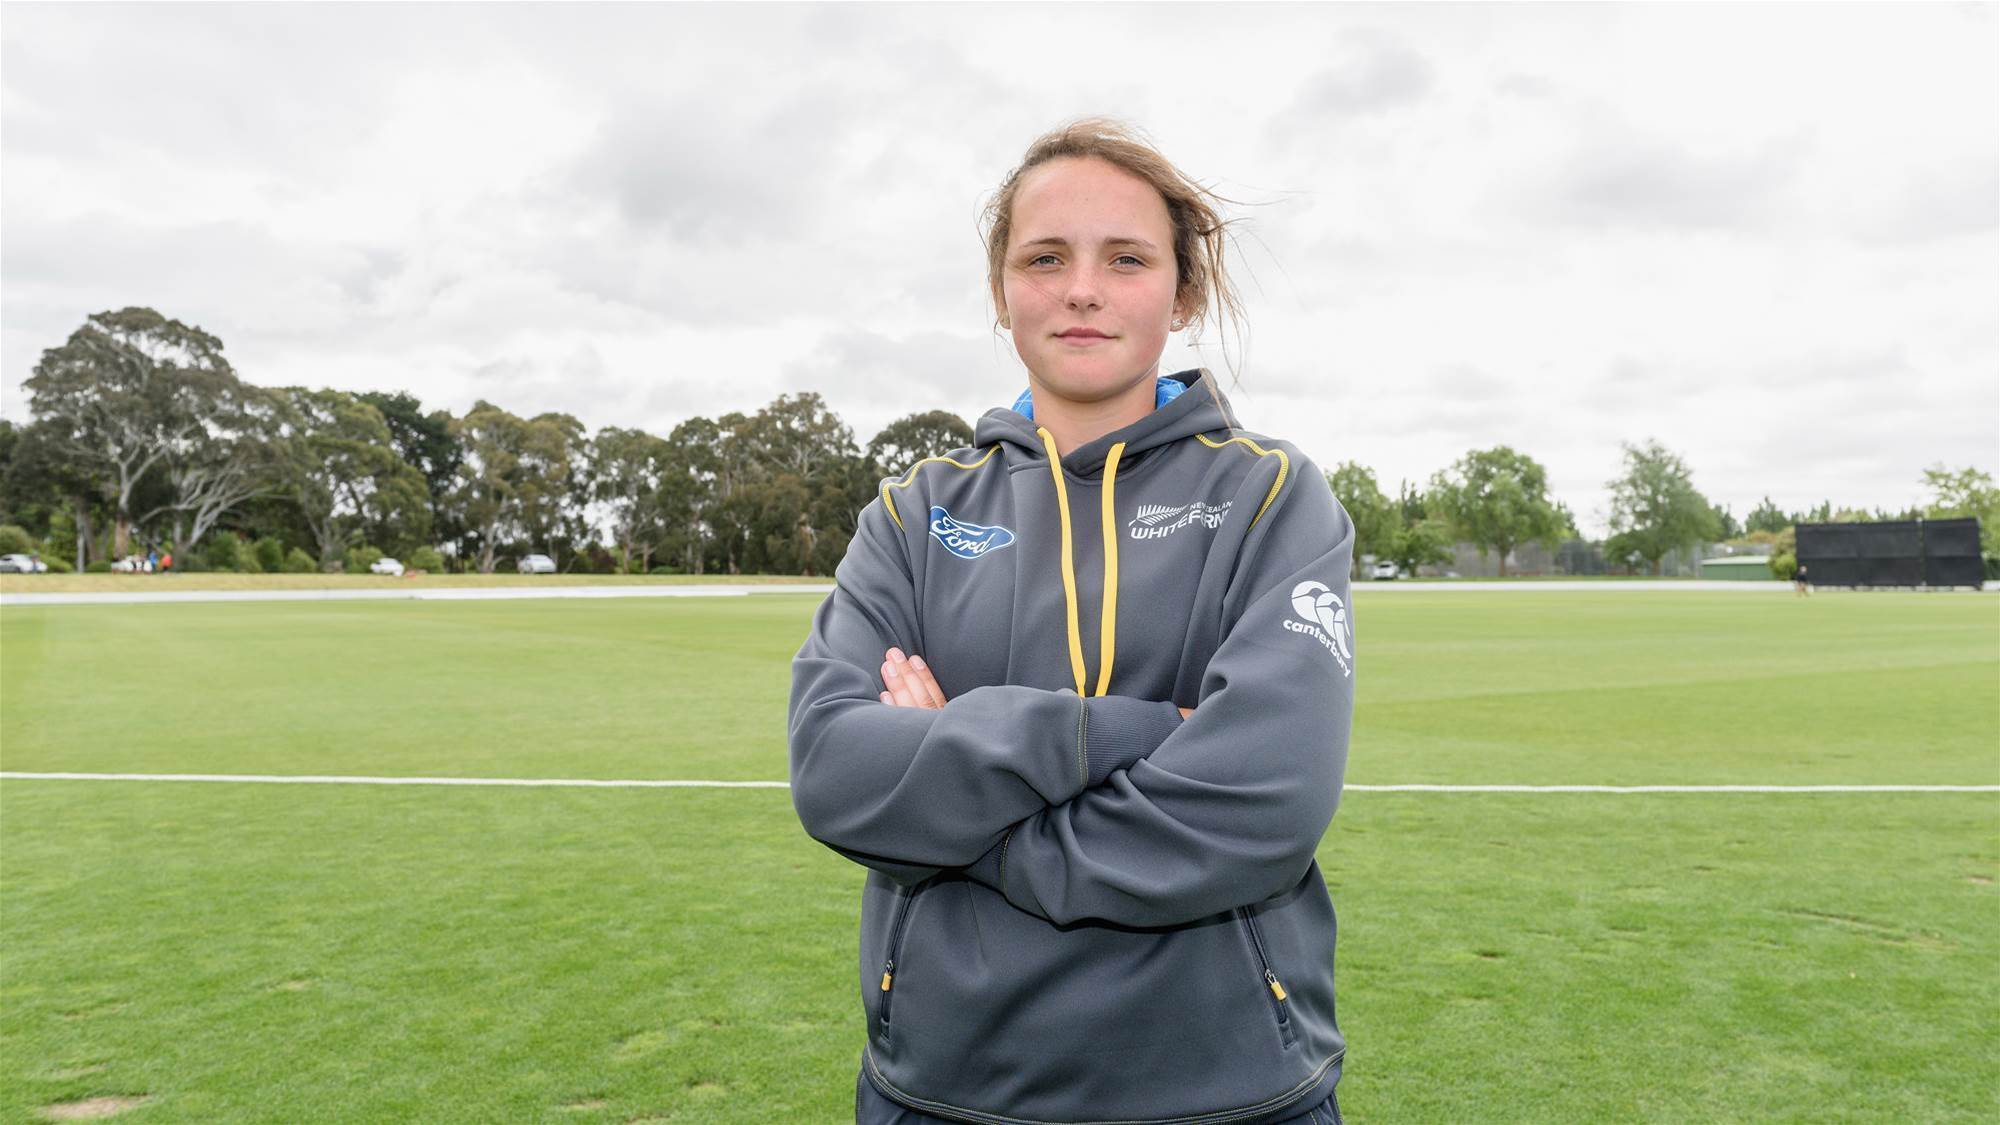 Young Kiwi breaks Belinda Clark's record